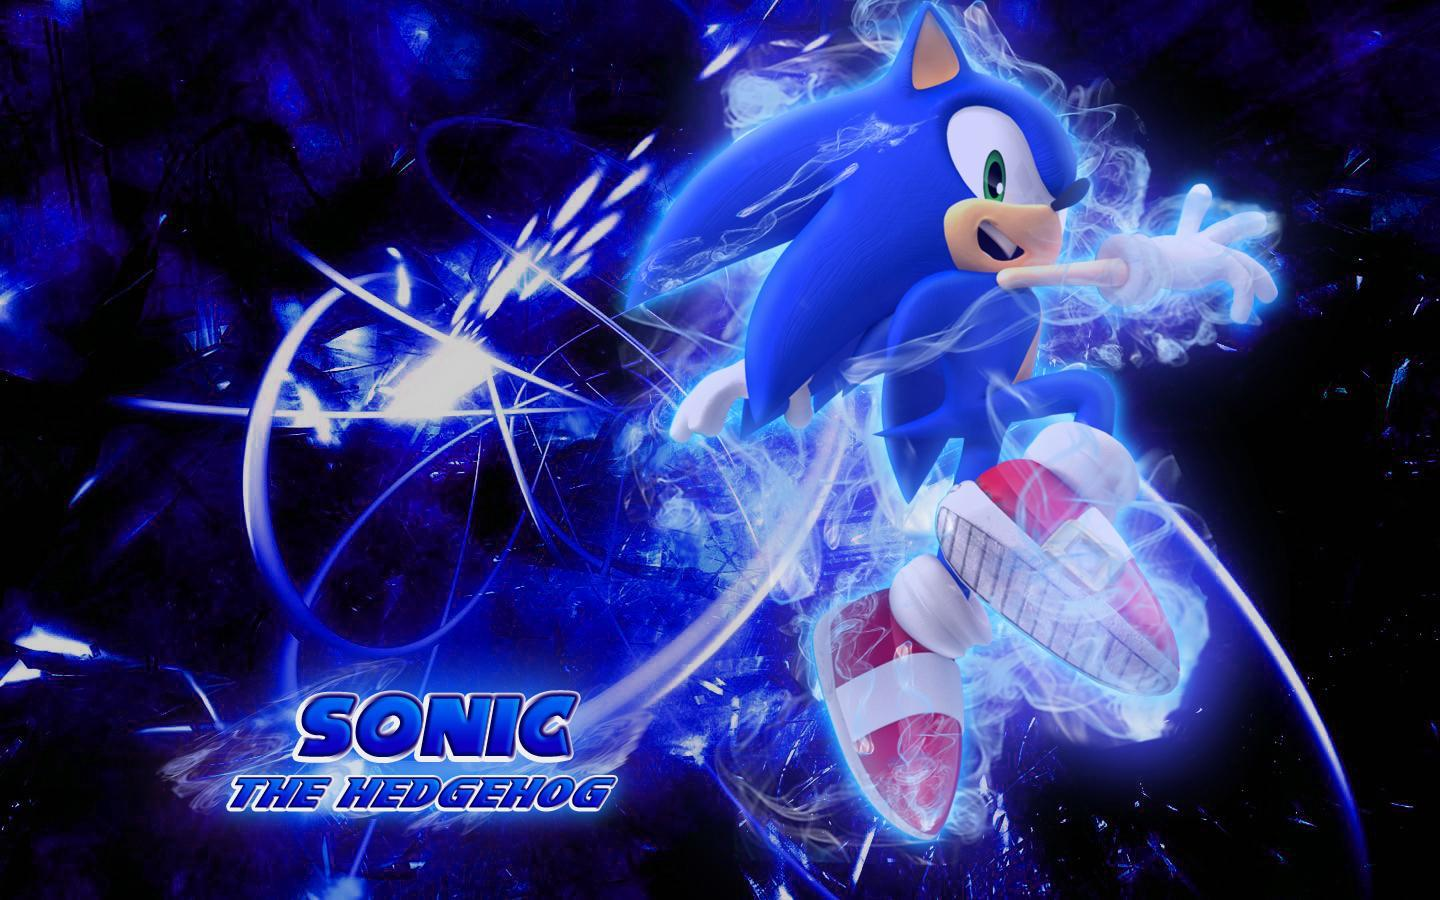 New Sonic Hedgehog Lock Screen Hd Wallpapers For Android Apk Download